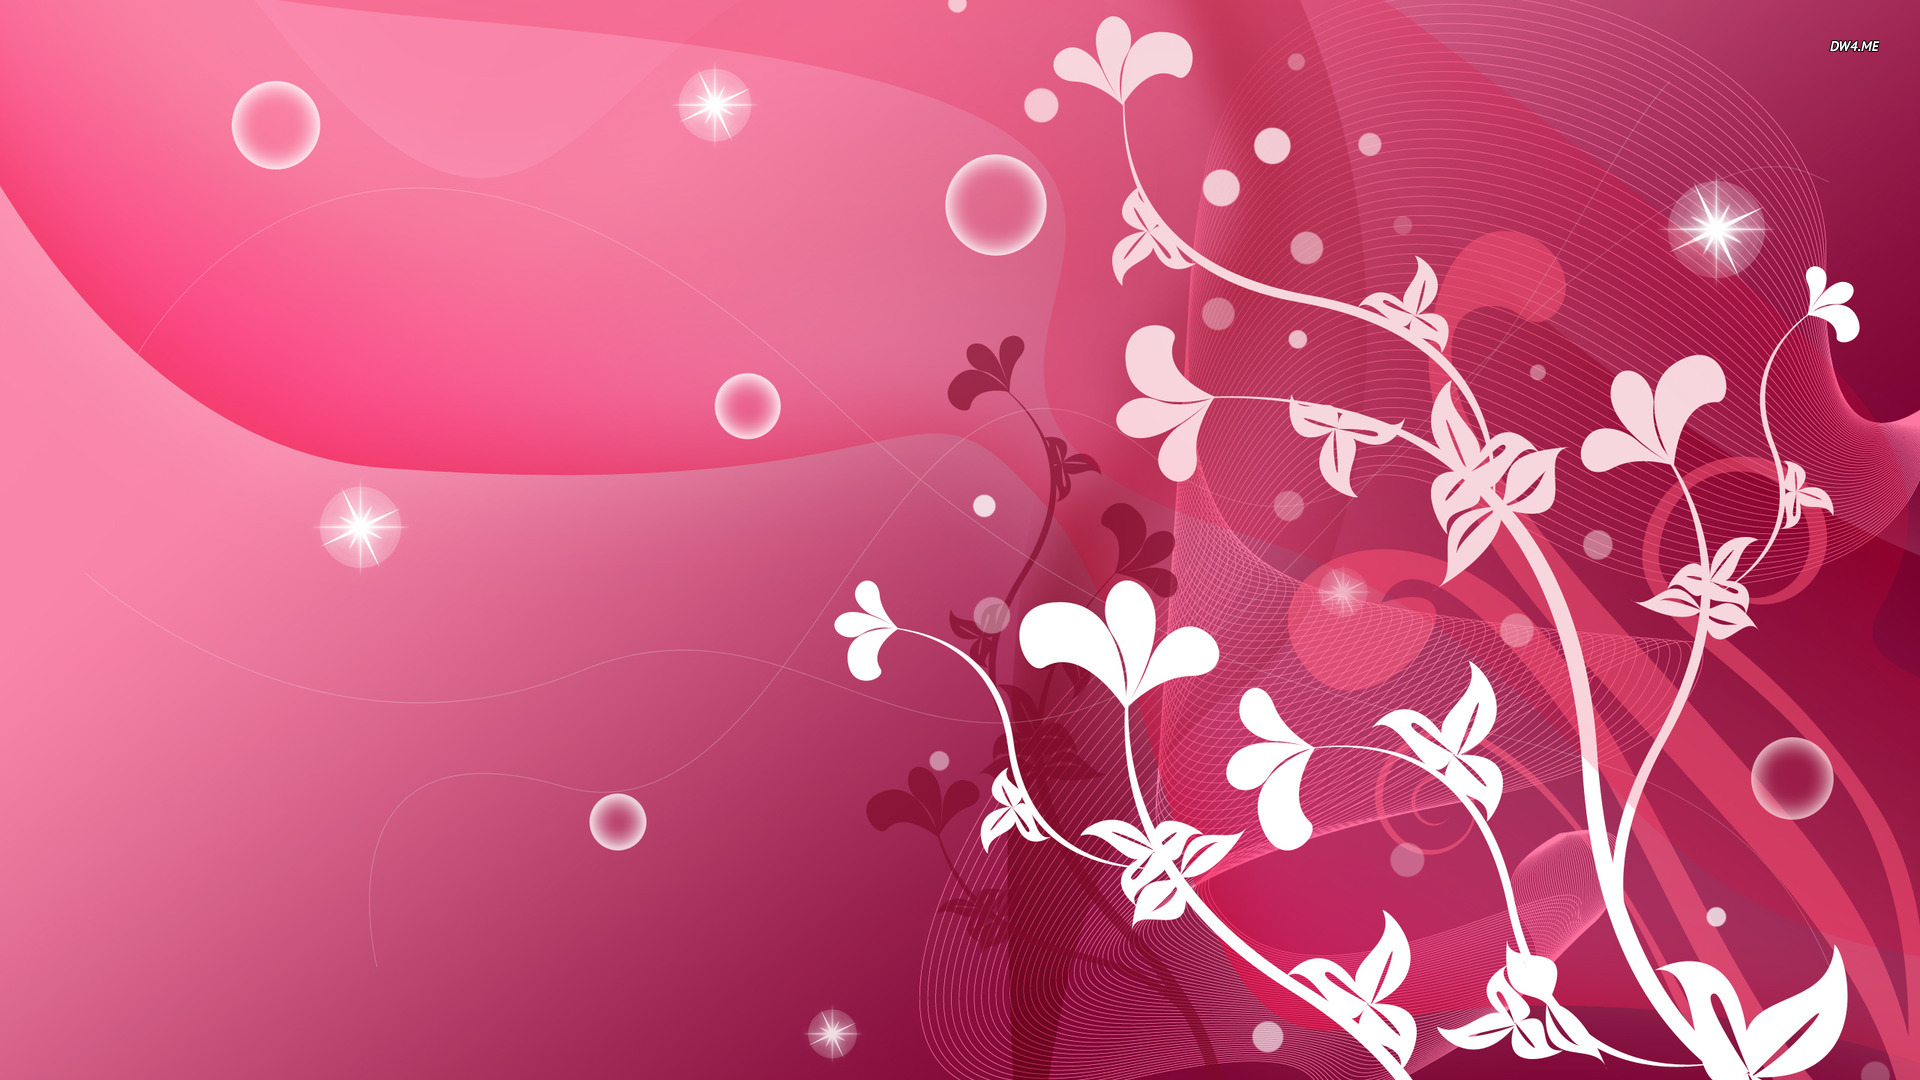 Pink Victoria Secret Wallpaper VS Pinterest 1920x1080